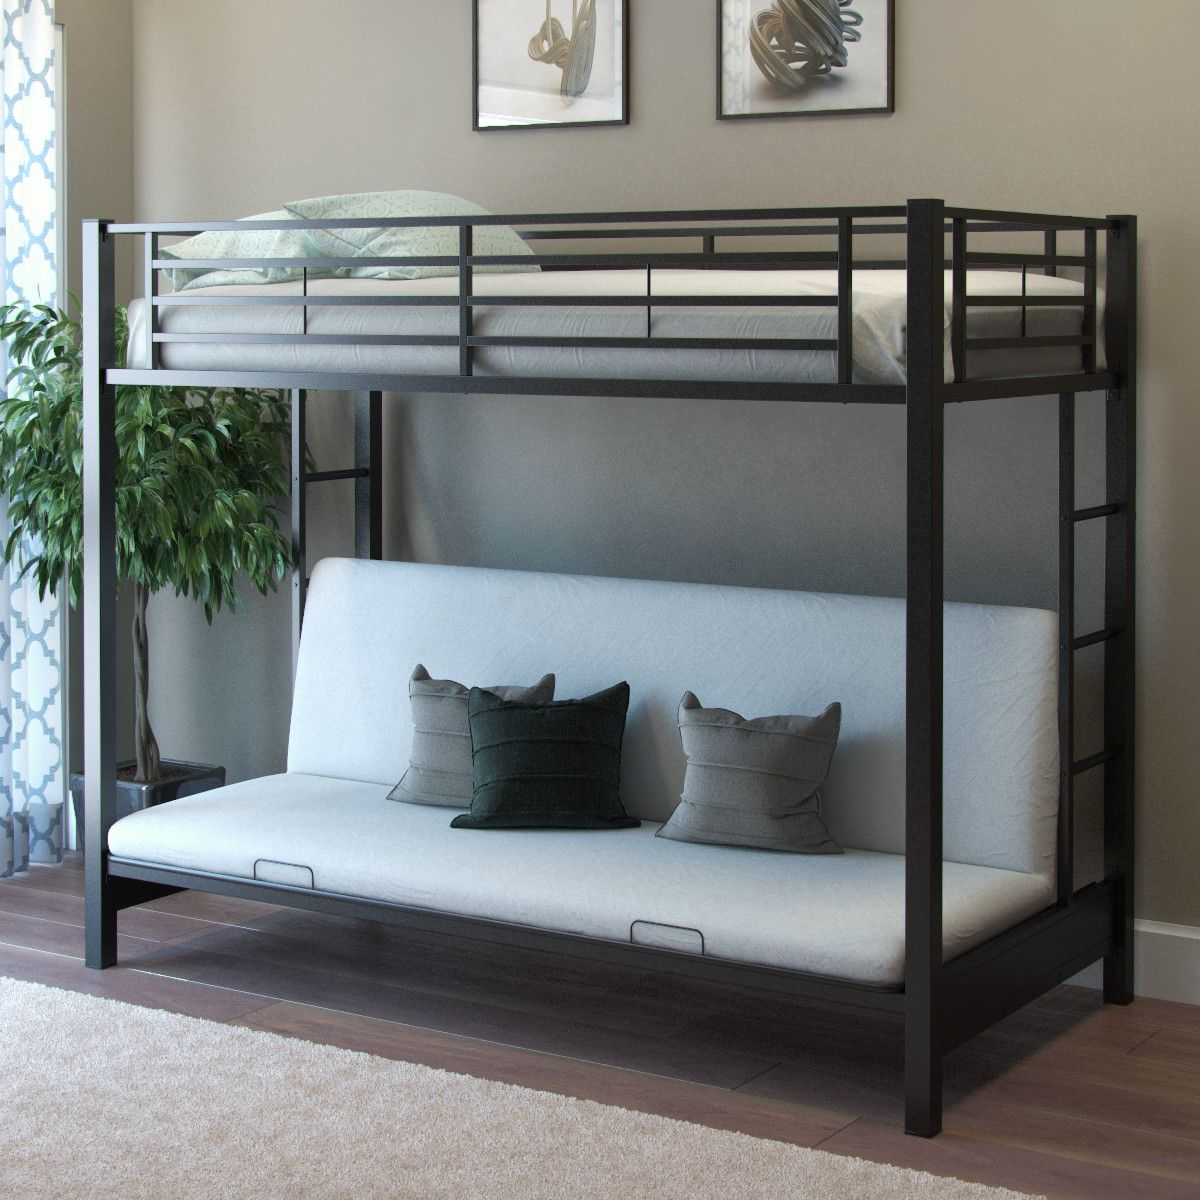 25 best ideas about twin size futon on pinterest double